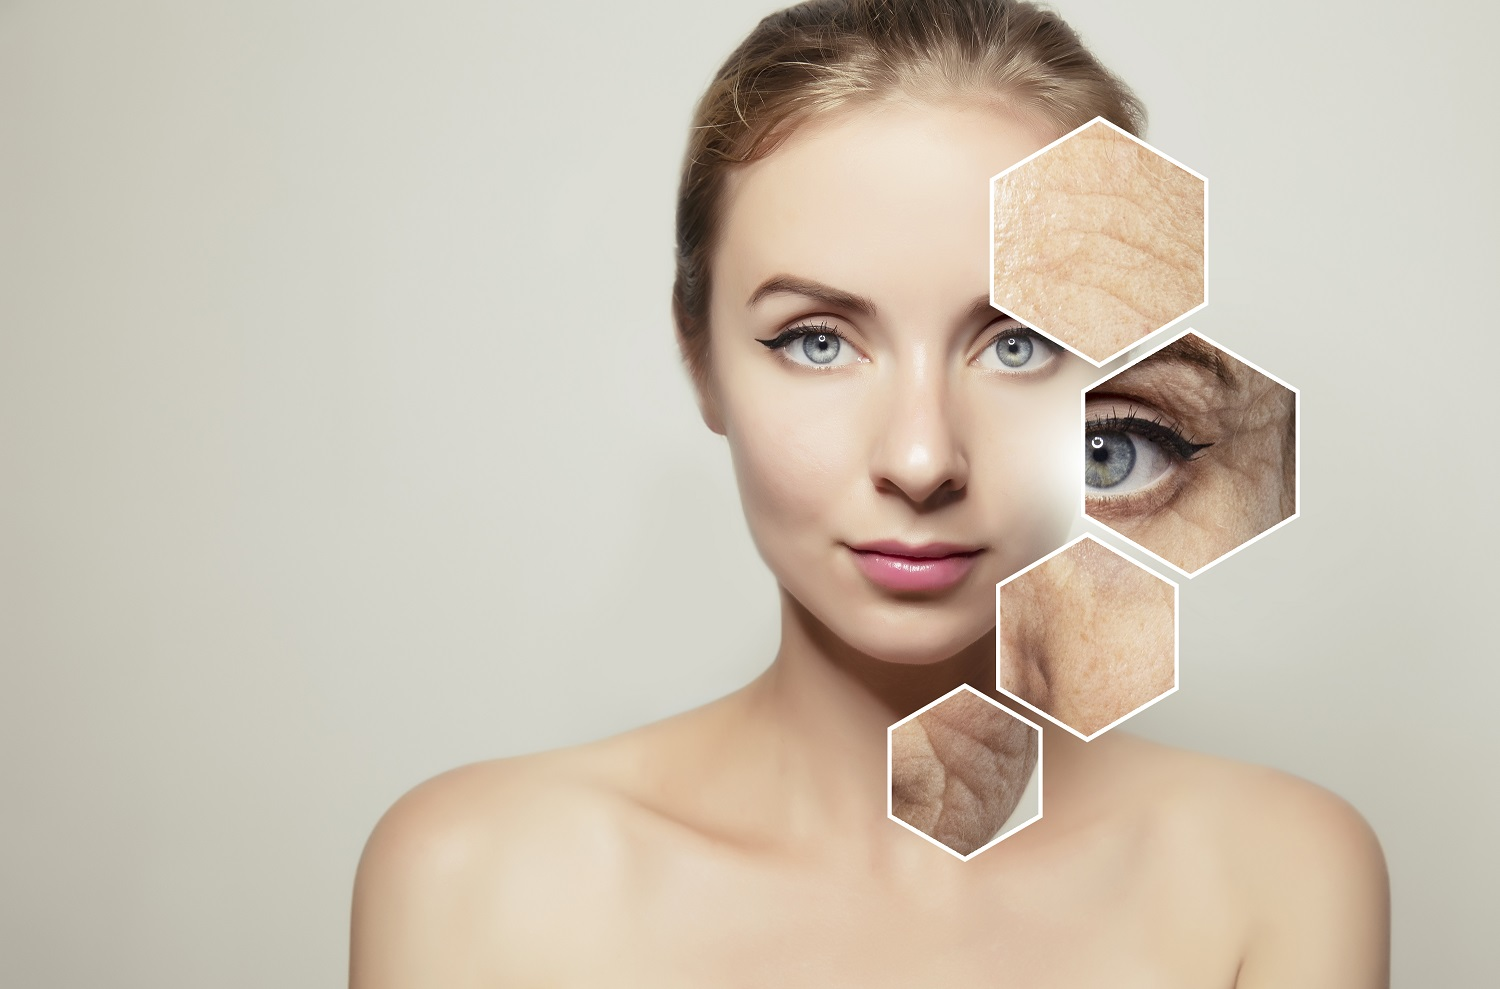 Top 7 Reasons Why You Need Skin Rejuvenation Treatment in Mississauga